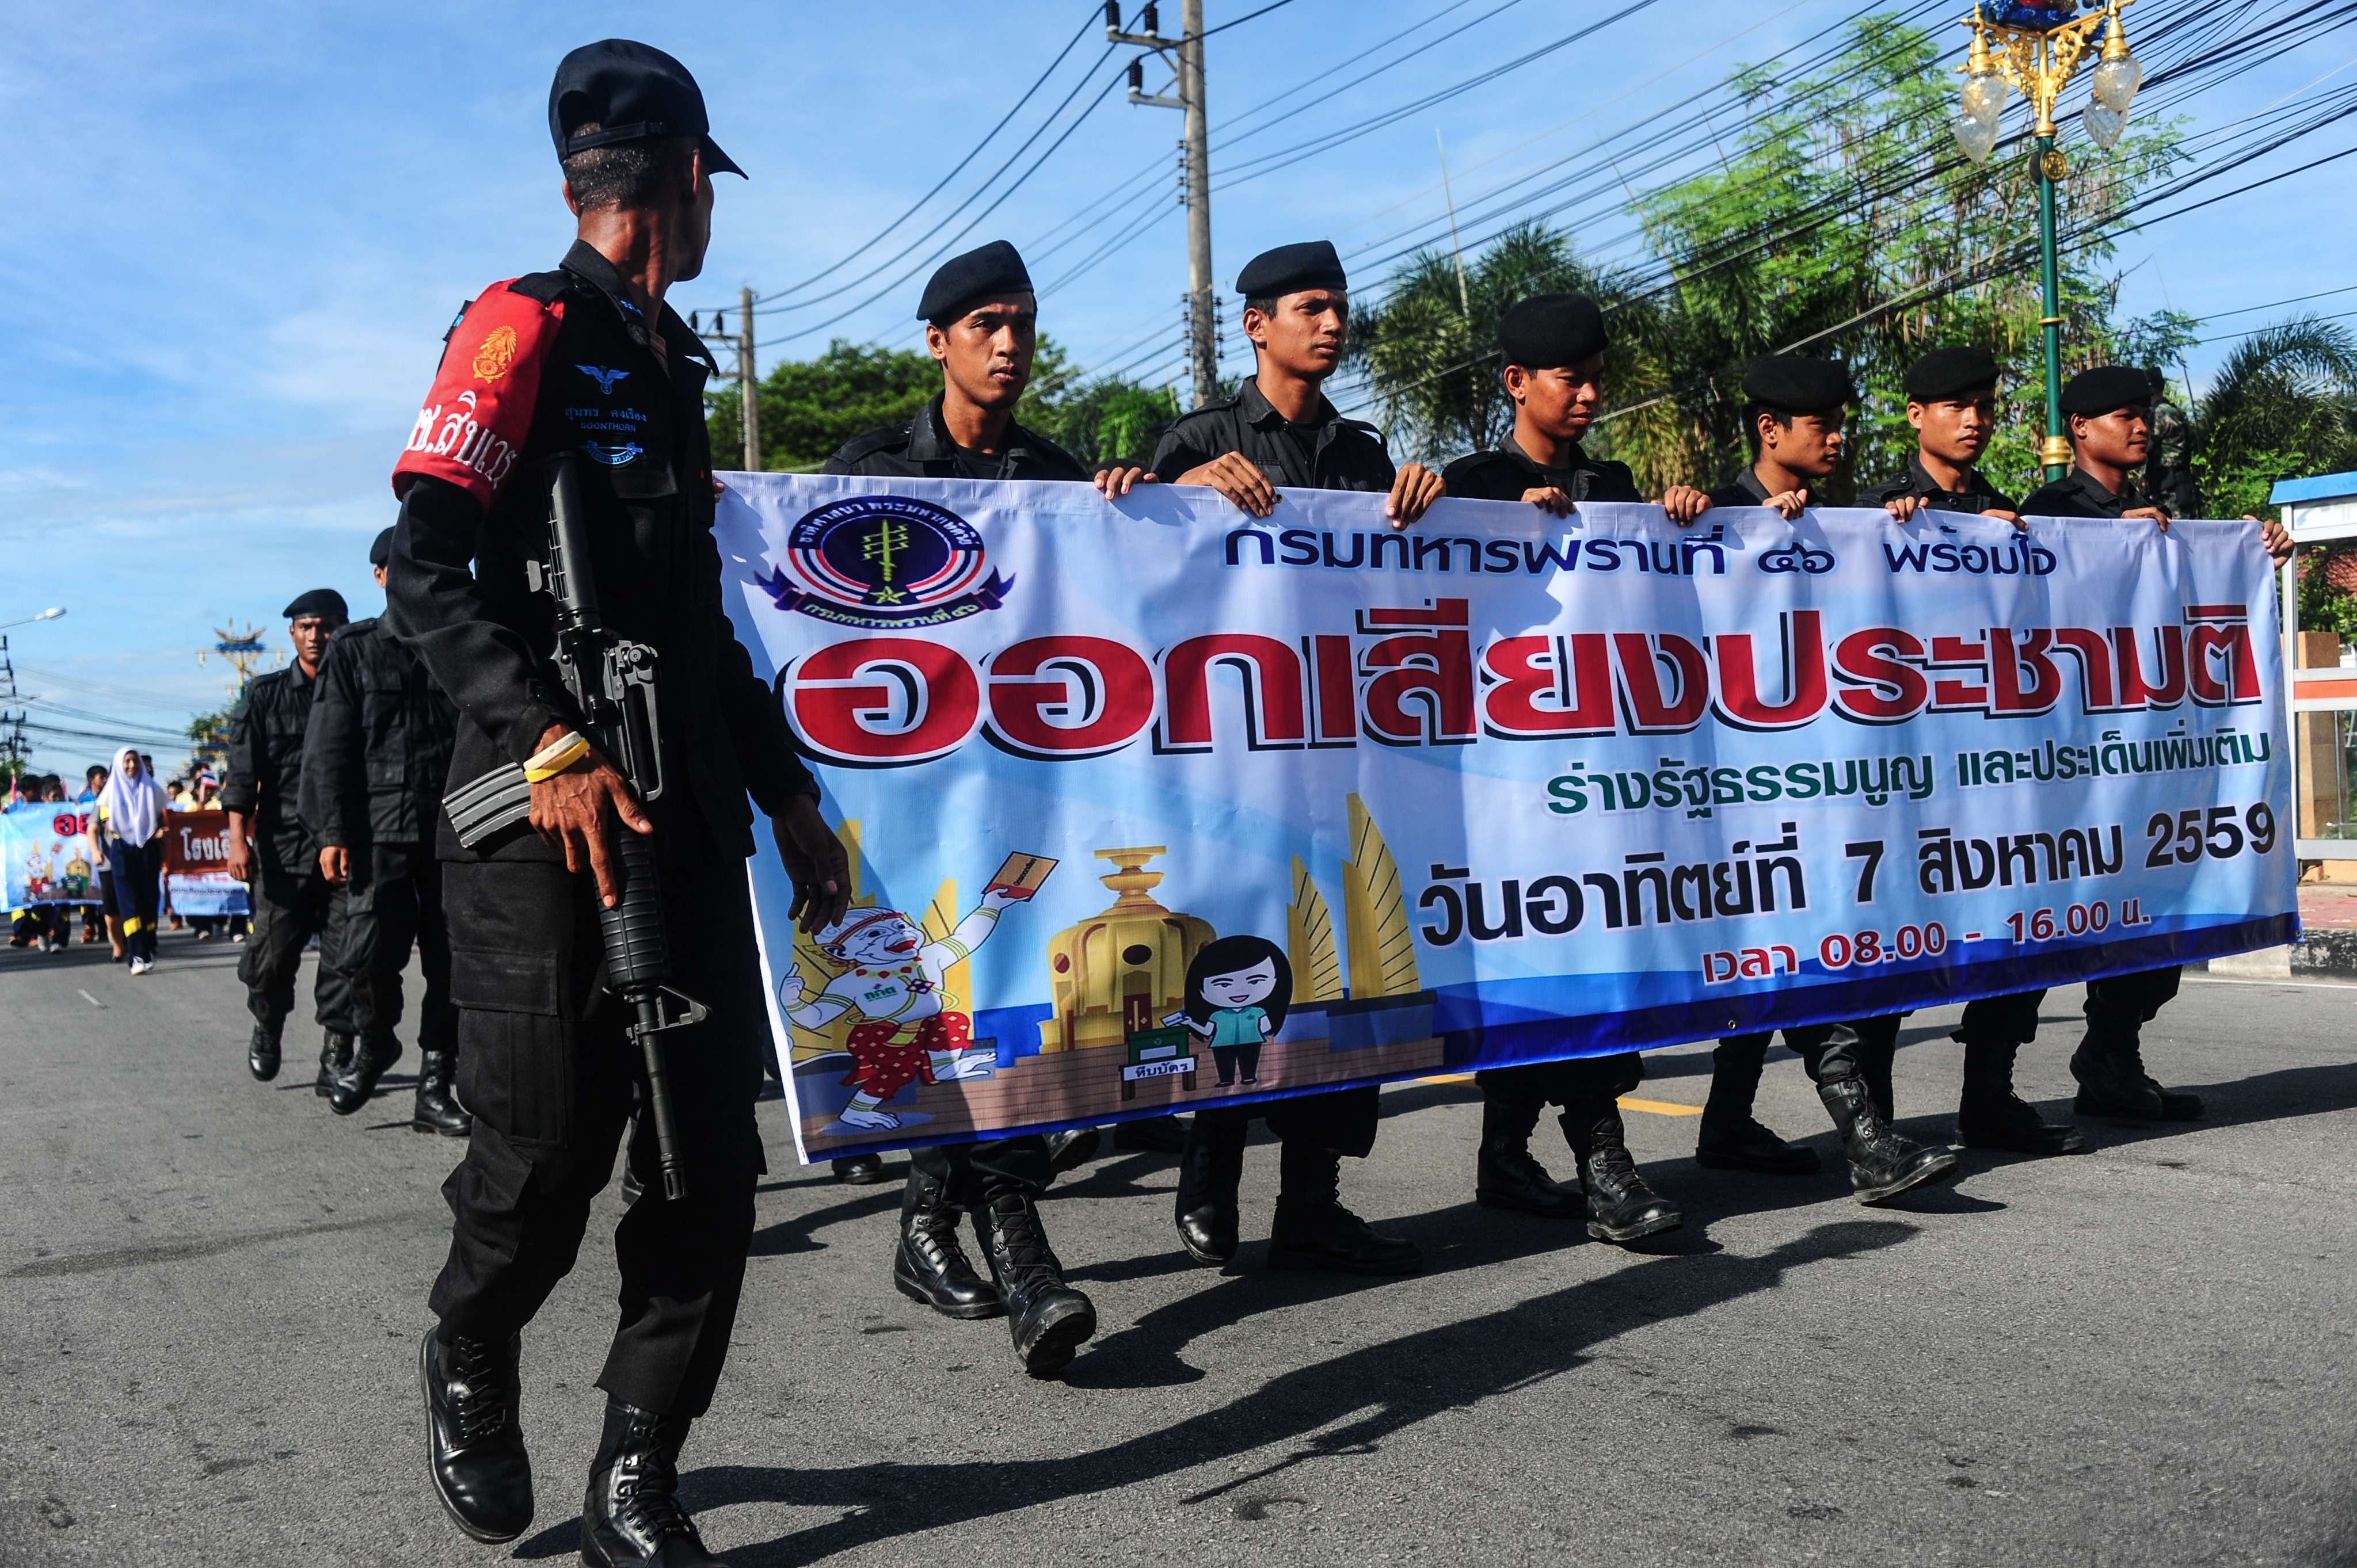 Soldiers hold banners as they march during a campaign encouraging the public to vote in the upcoming referendum on Thailand's draft constitution in Narathiwat province on July 22, 2016.